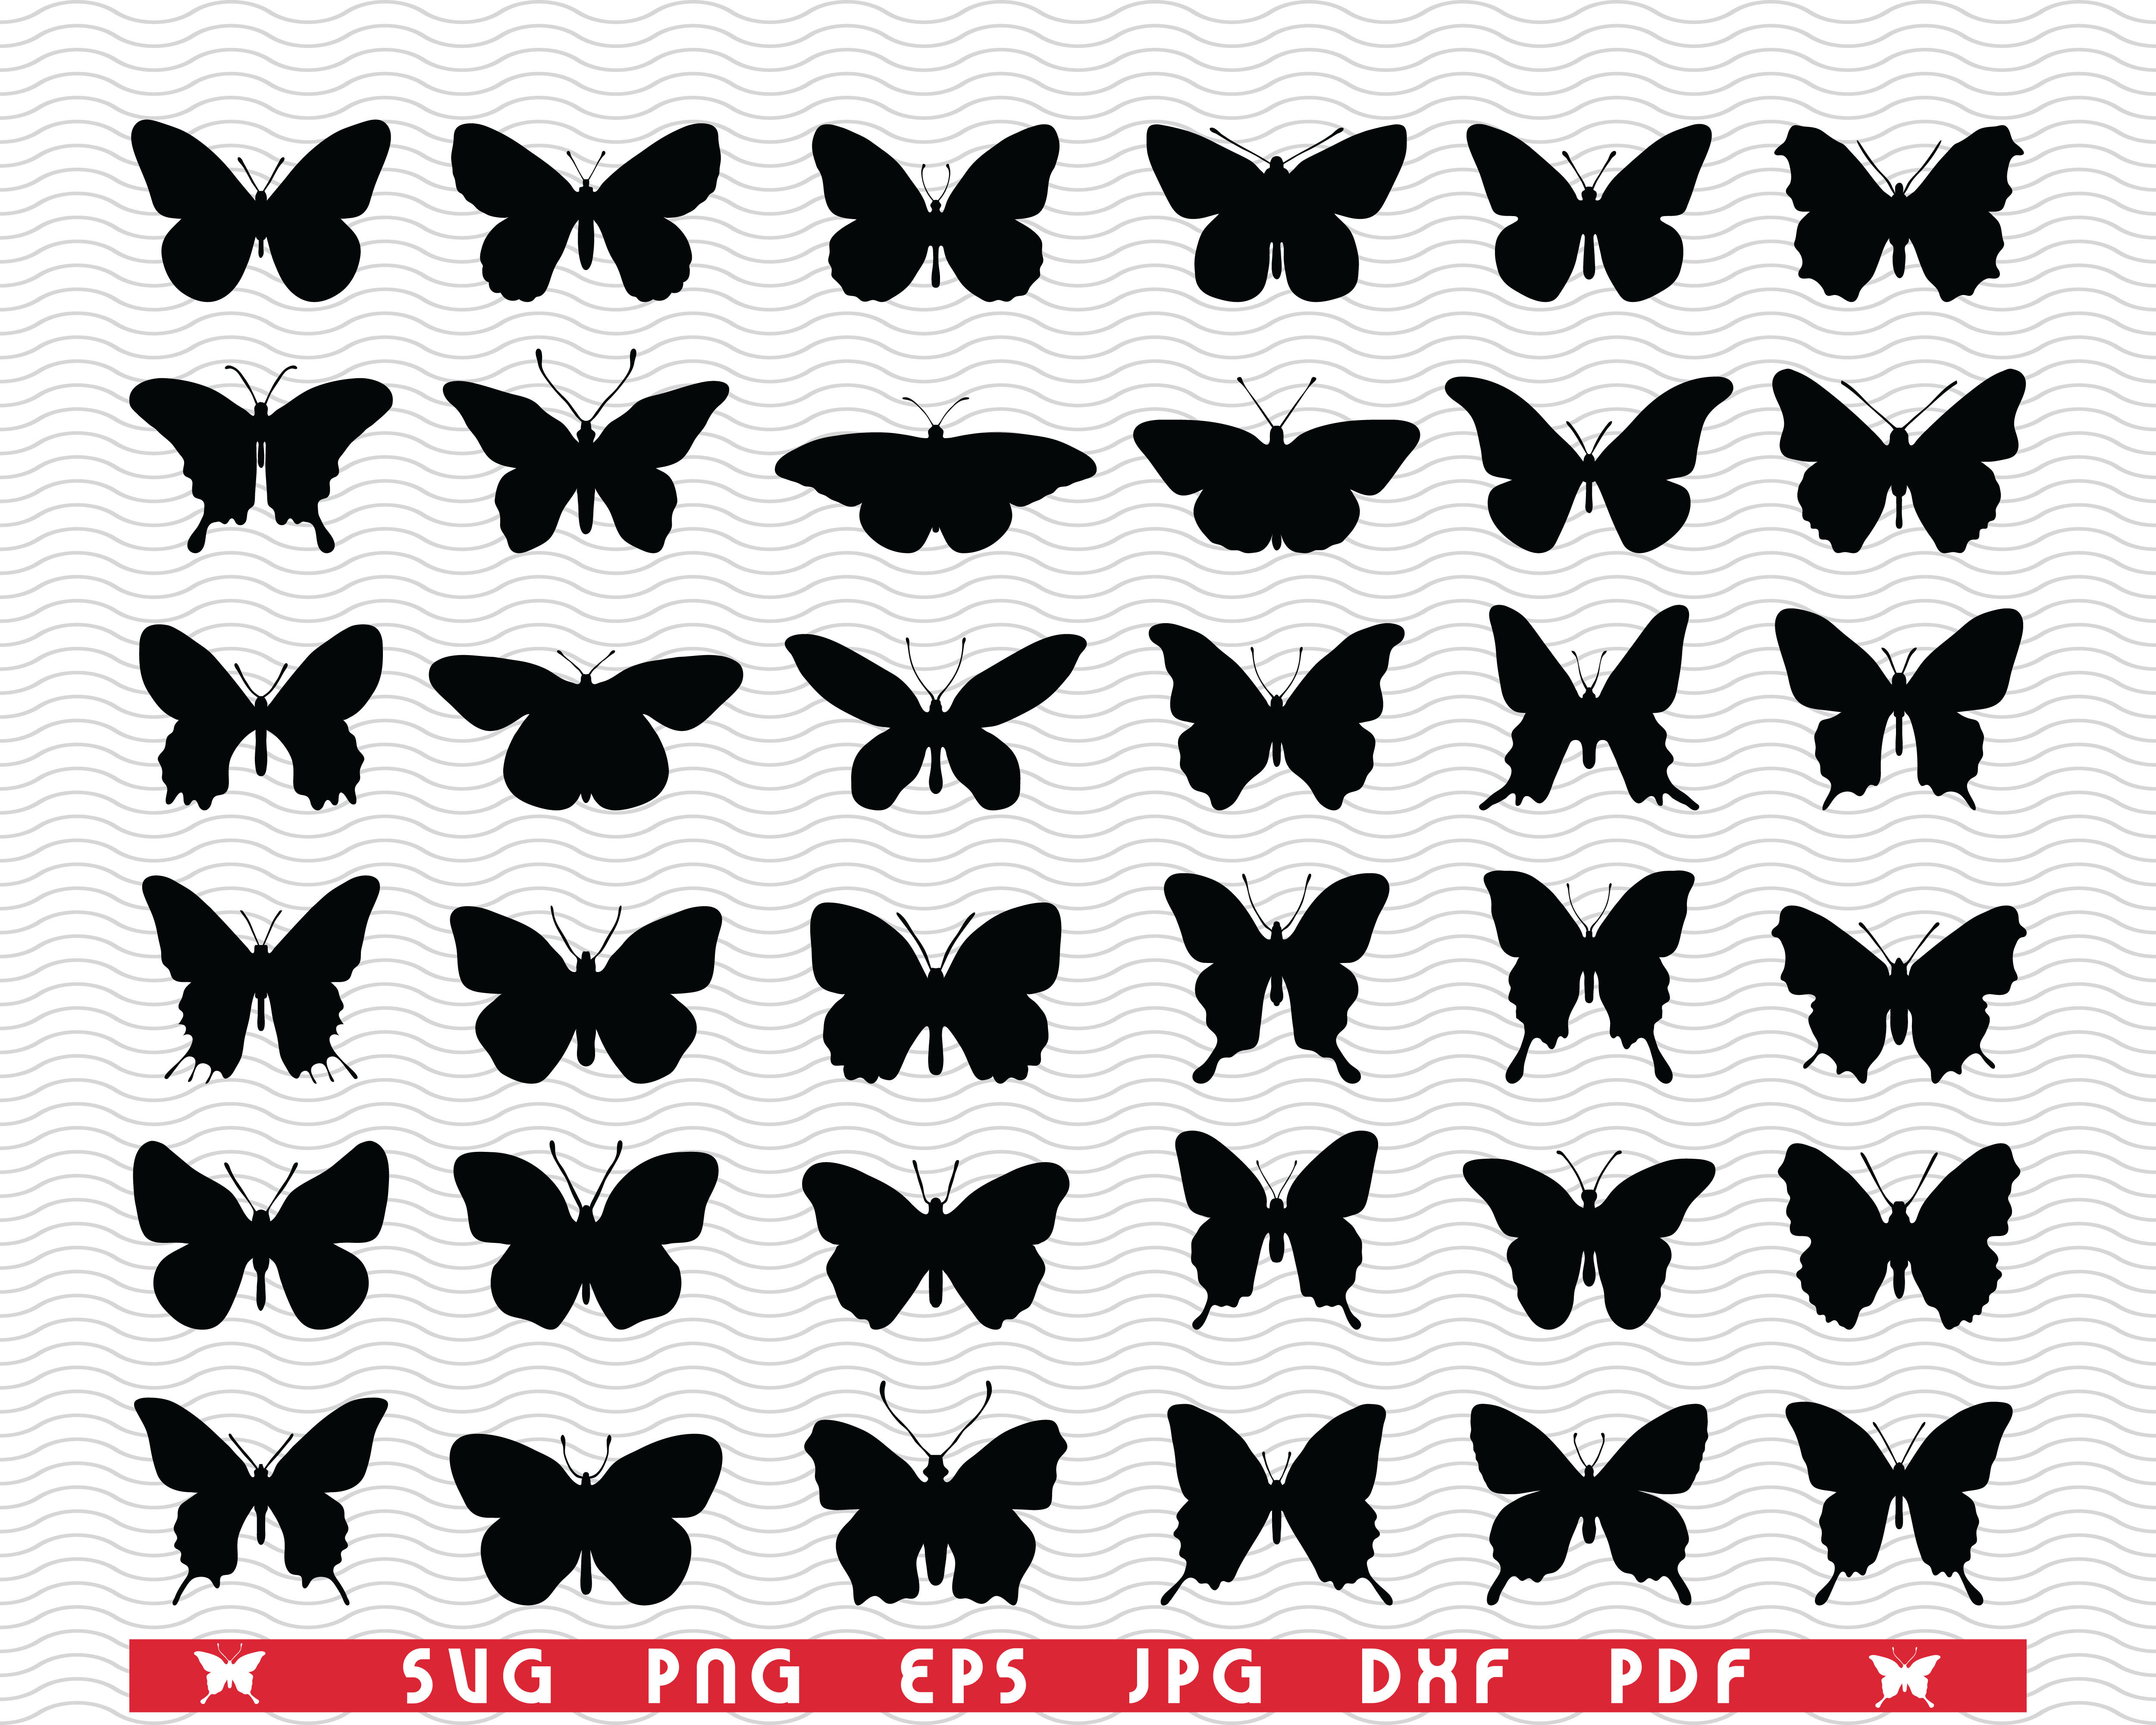 Svg Butterflies Black Silhouettes Digital Clipart By